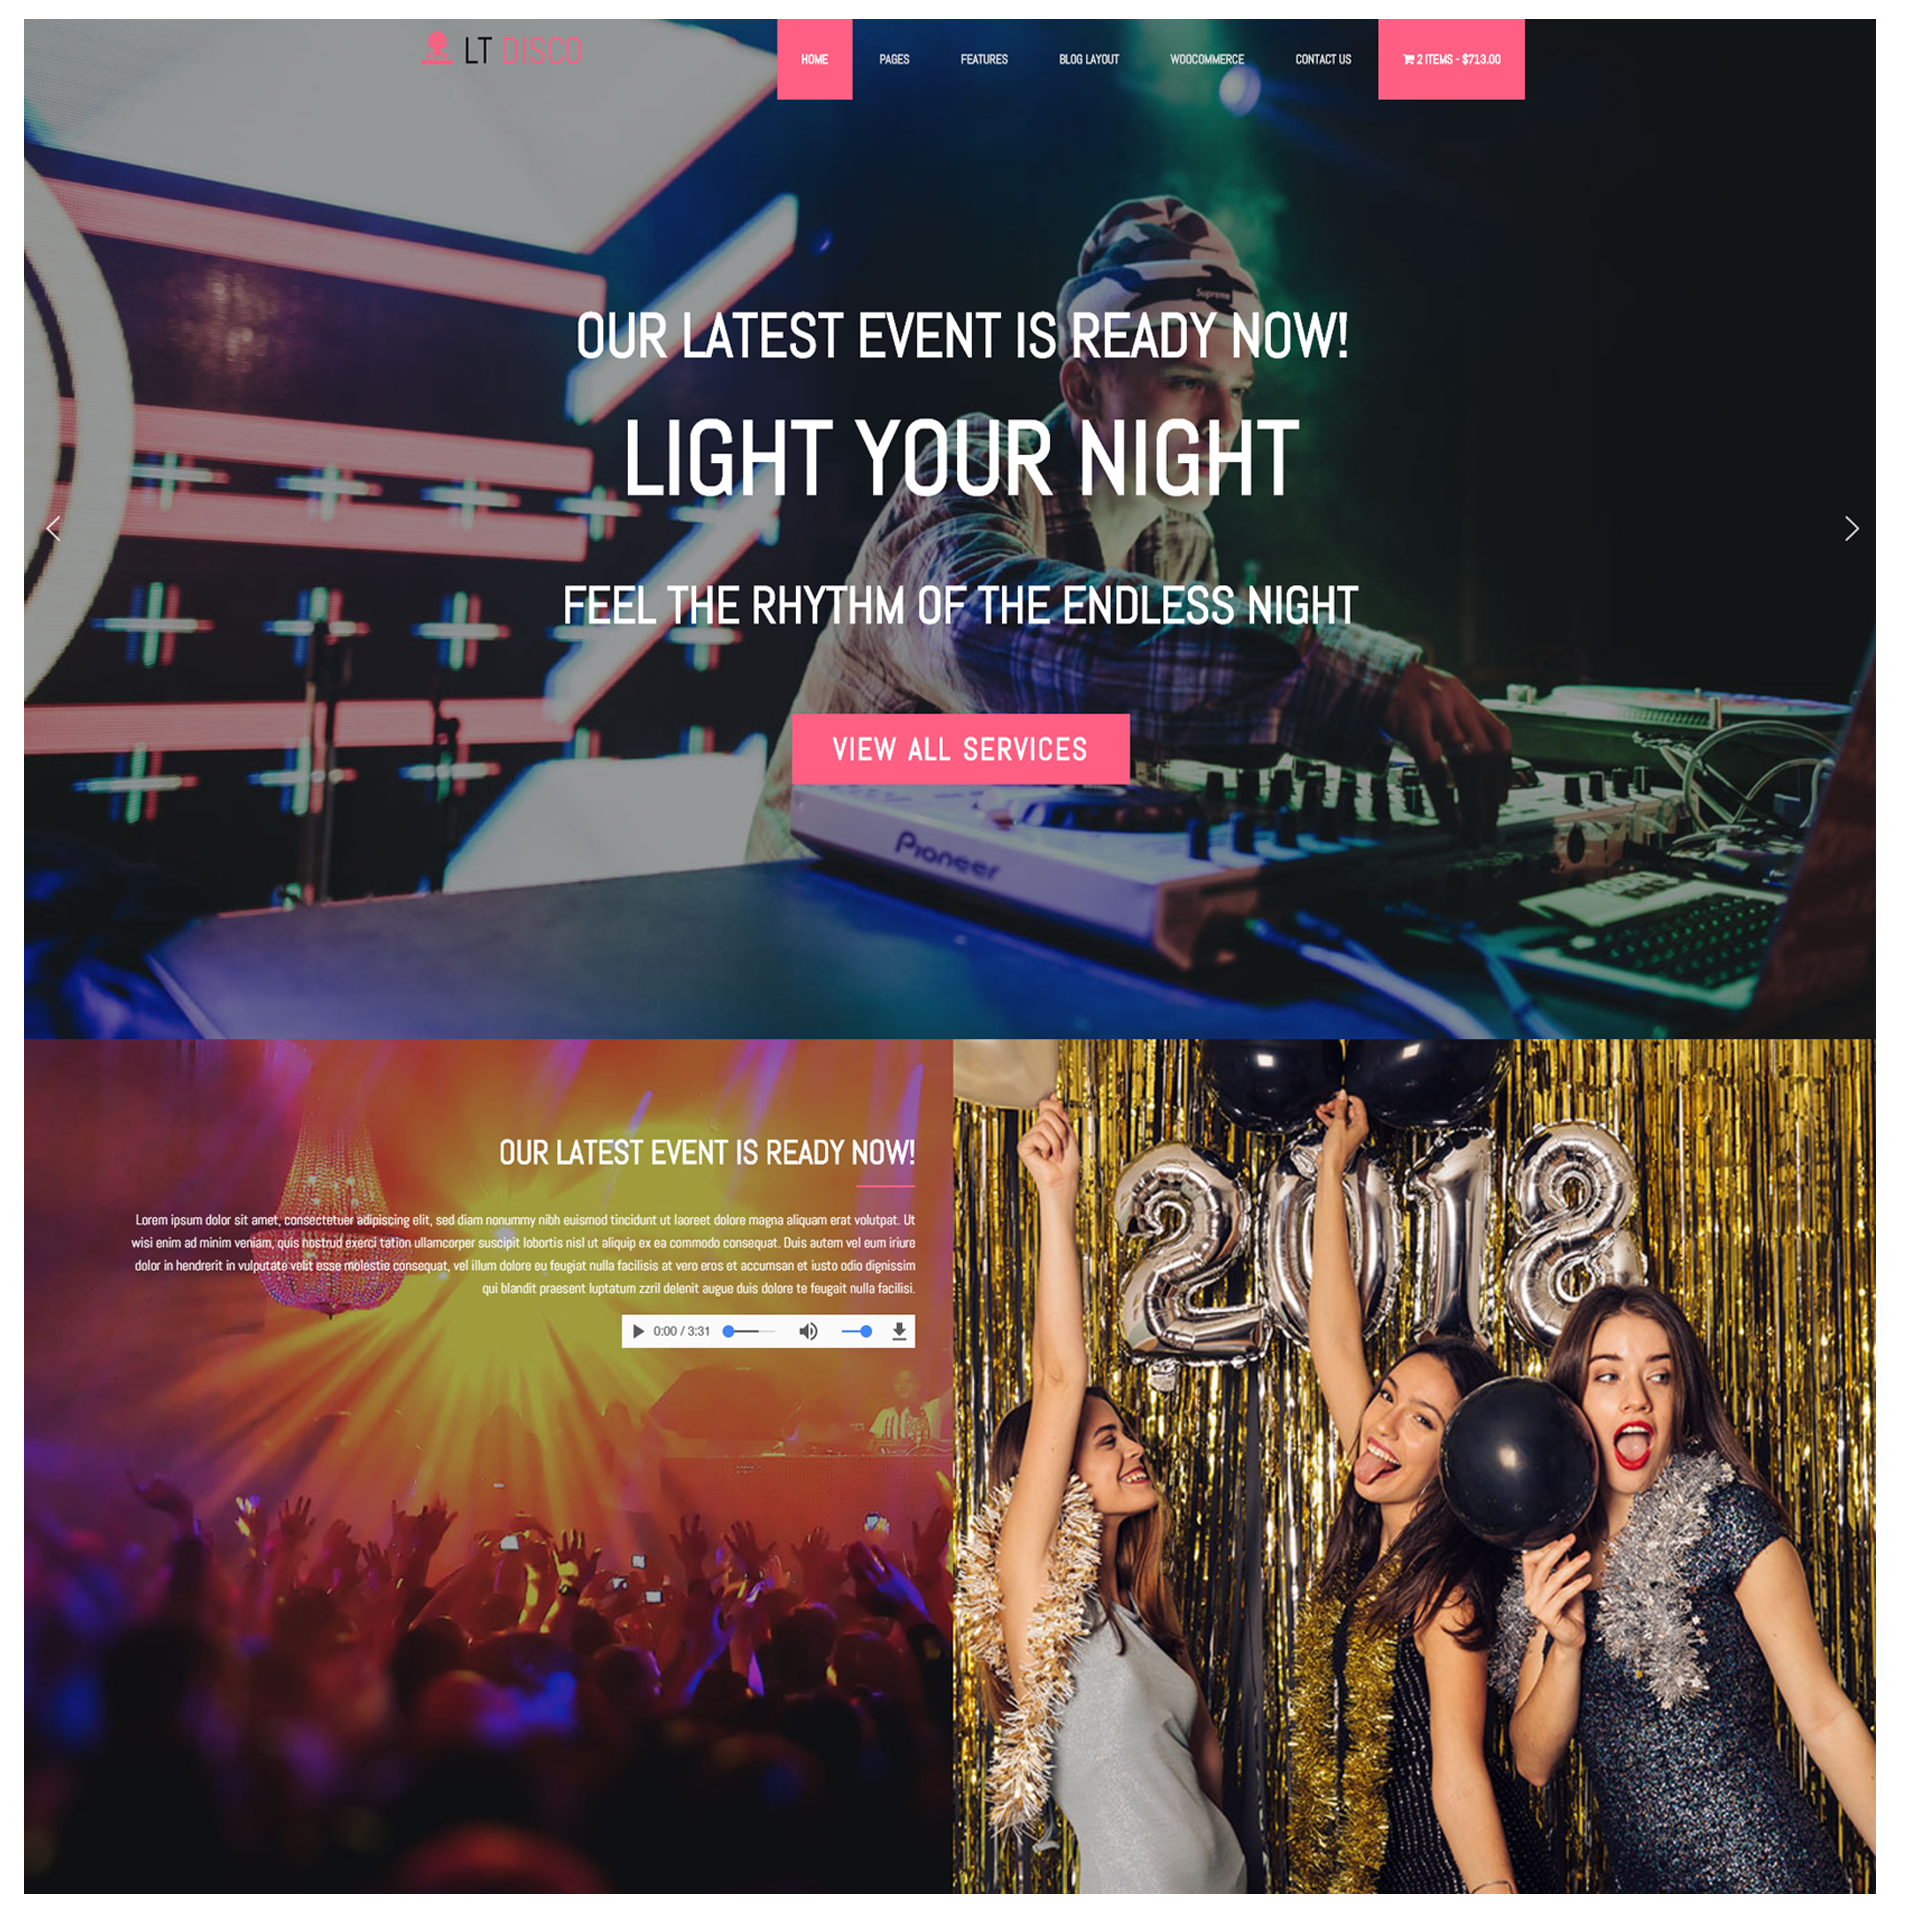 lt-disco-free-responsive-wordpress-theme-screenshot